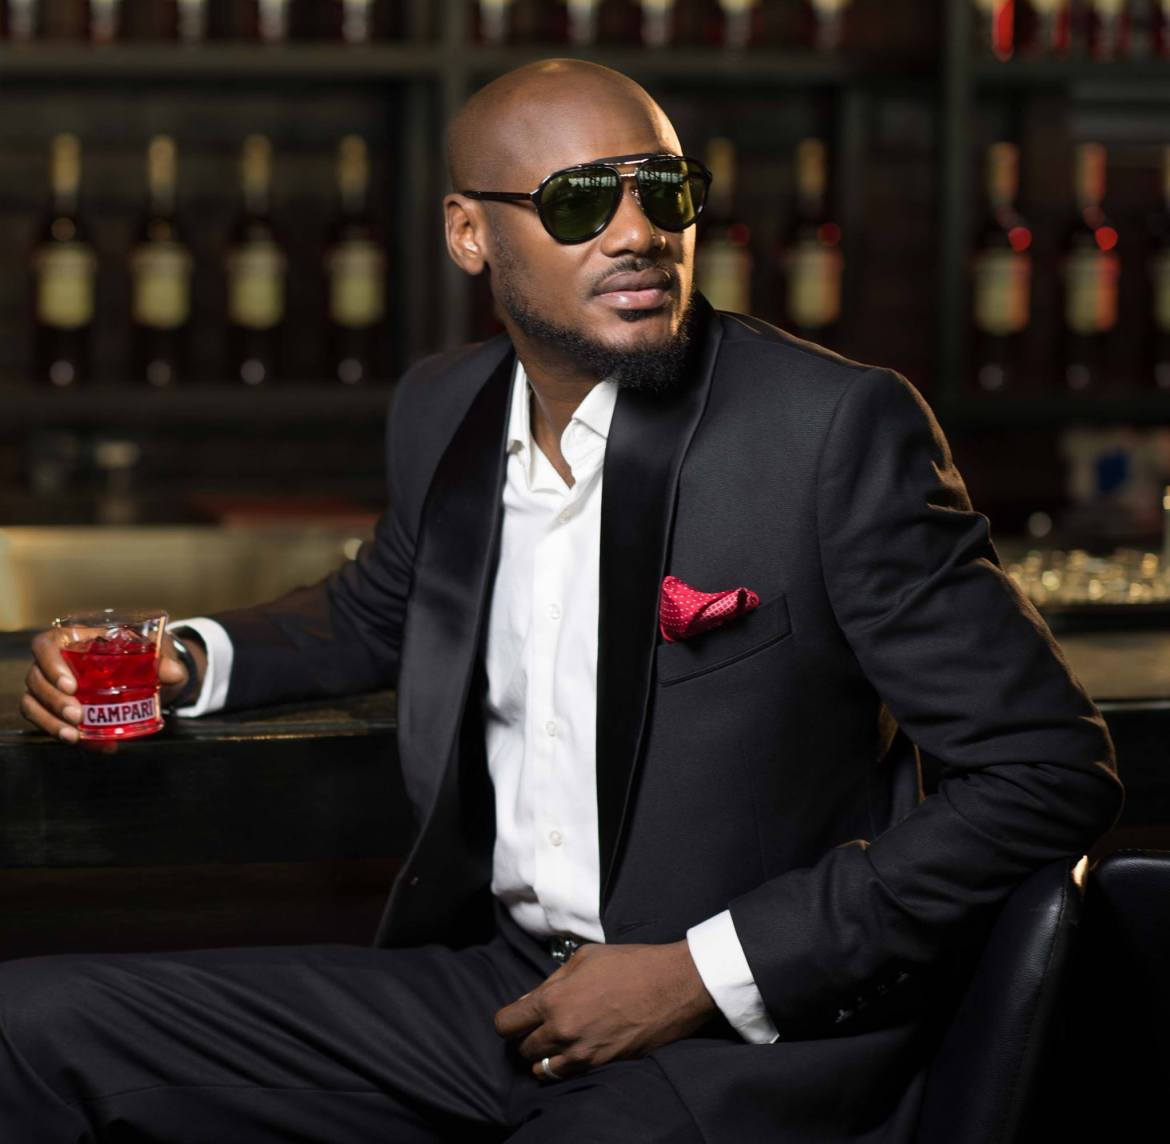 2face idibia celebrates his 43rd birthday today - 2Baba Reveals Lesson Learnt in the Music Industry